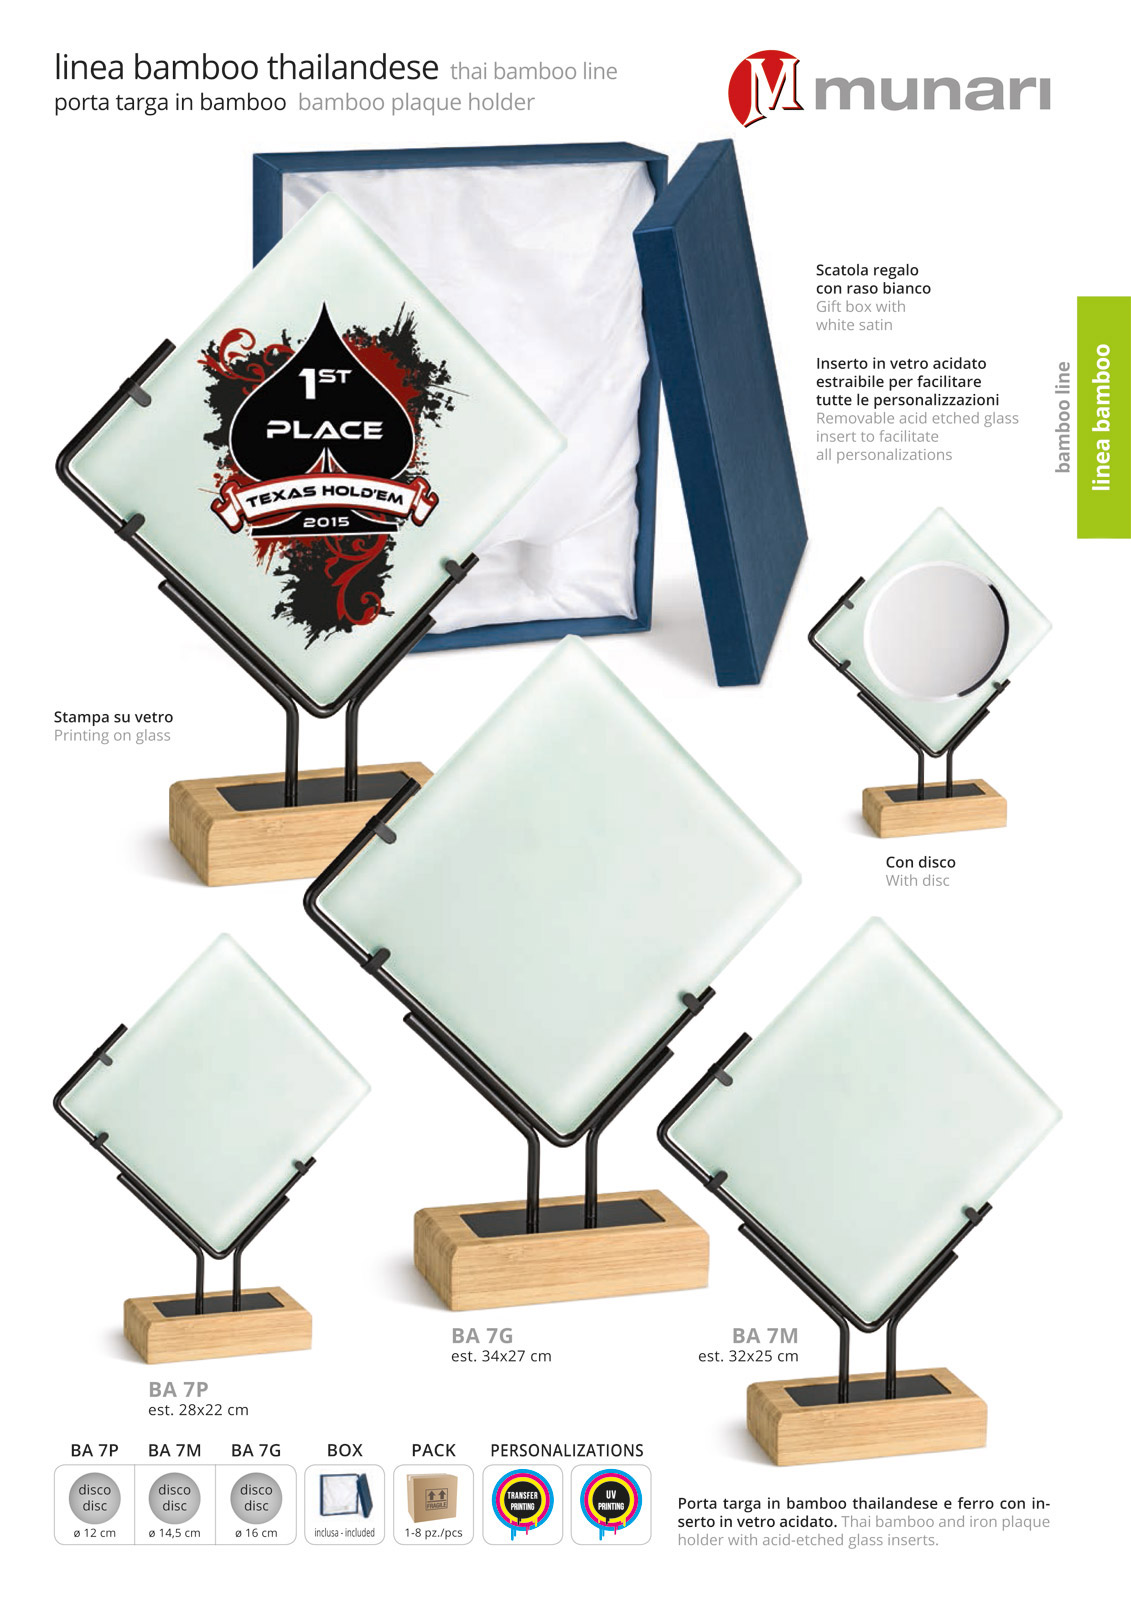 Bamboo trophies with acid-etched glass series BA 7